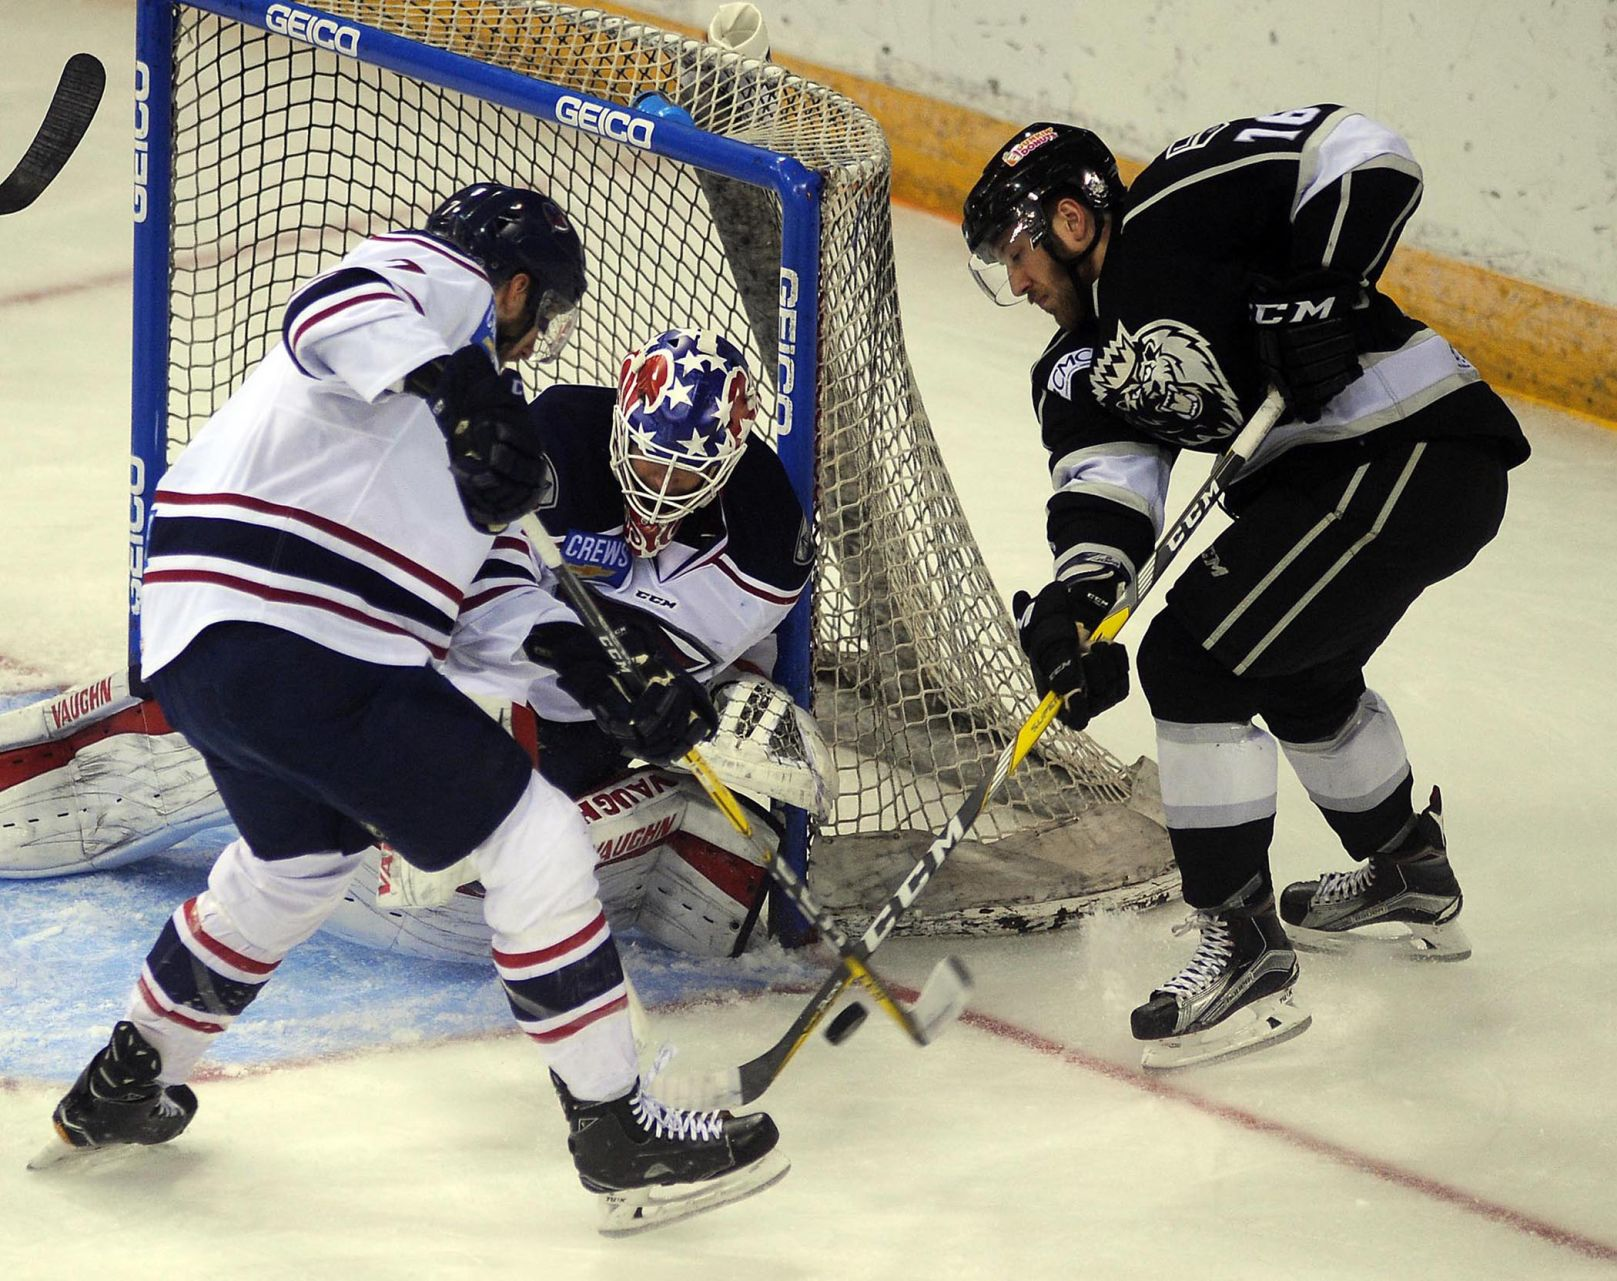 ECHL: Manchester Trounces Stingrays, 5-1; Forces Game 7 Wednesday Night